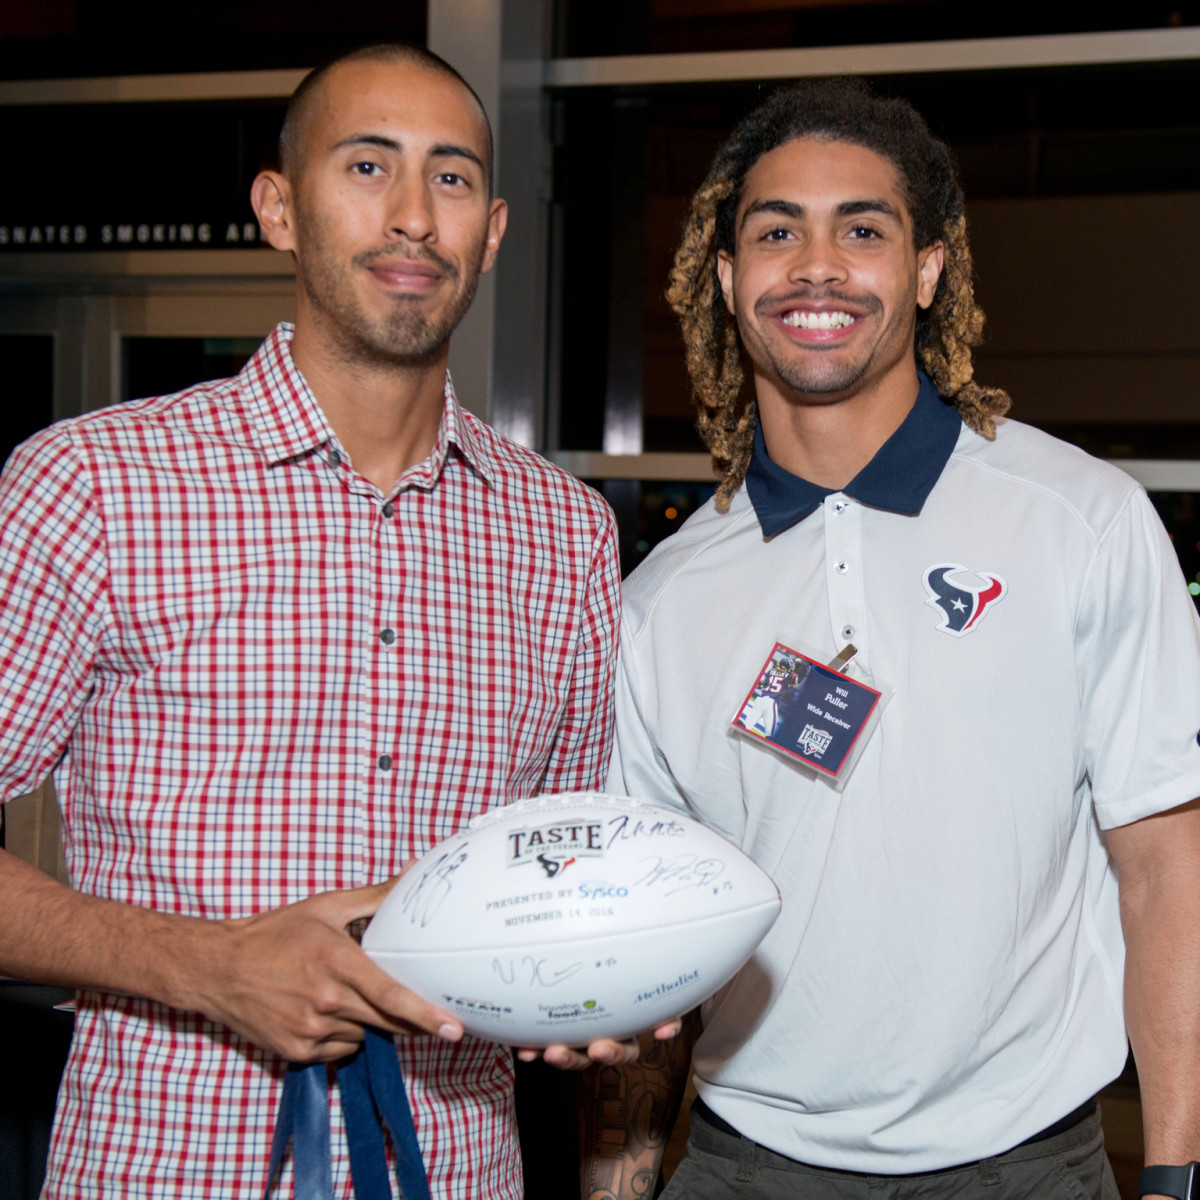 efebab06ab9 Taste of the Texans draws 25 top restaurants and football stars ...